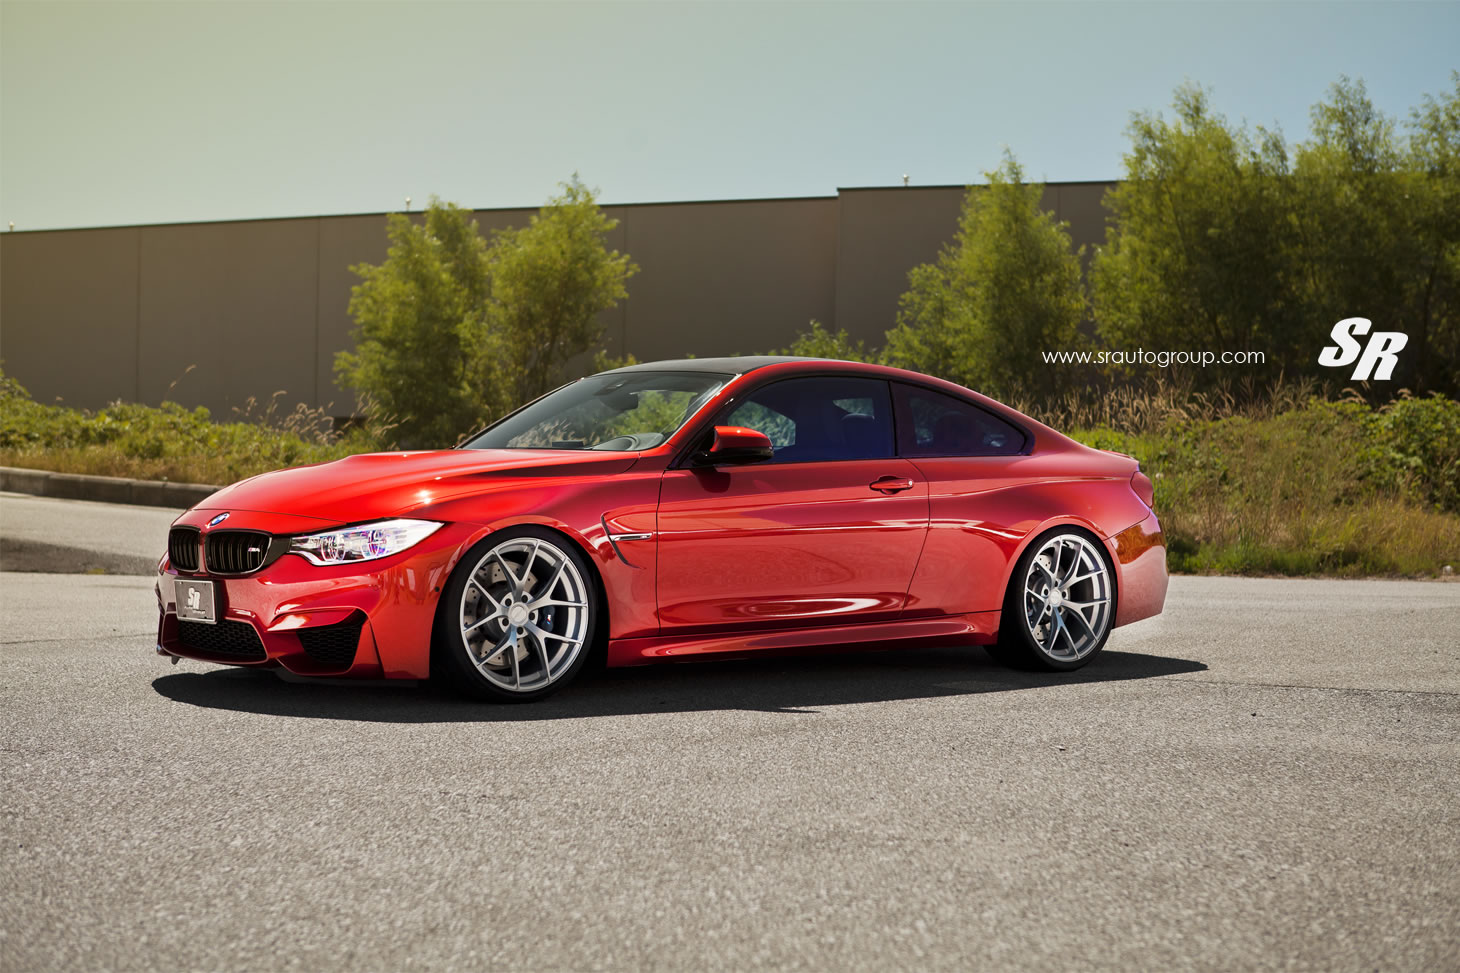 2015 Bmw M4 Coupe By Pur Front Photo Sakhir Orange